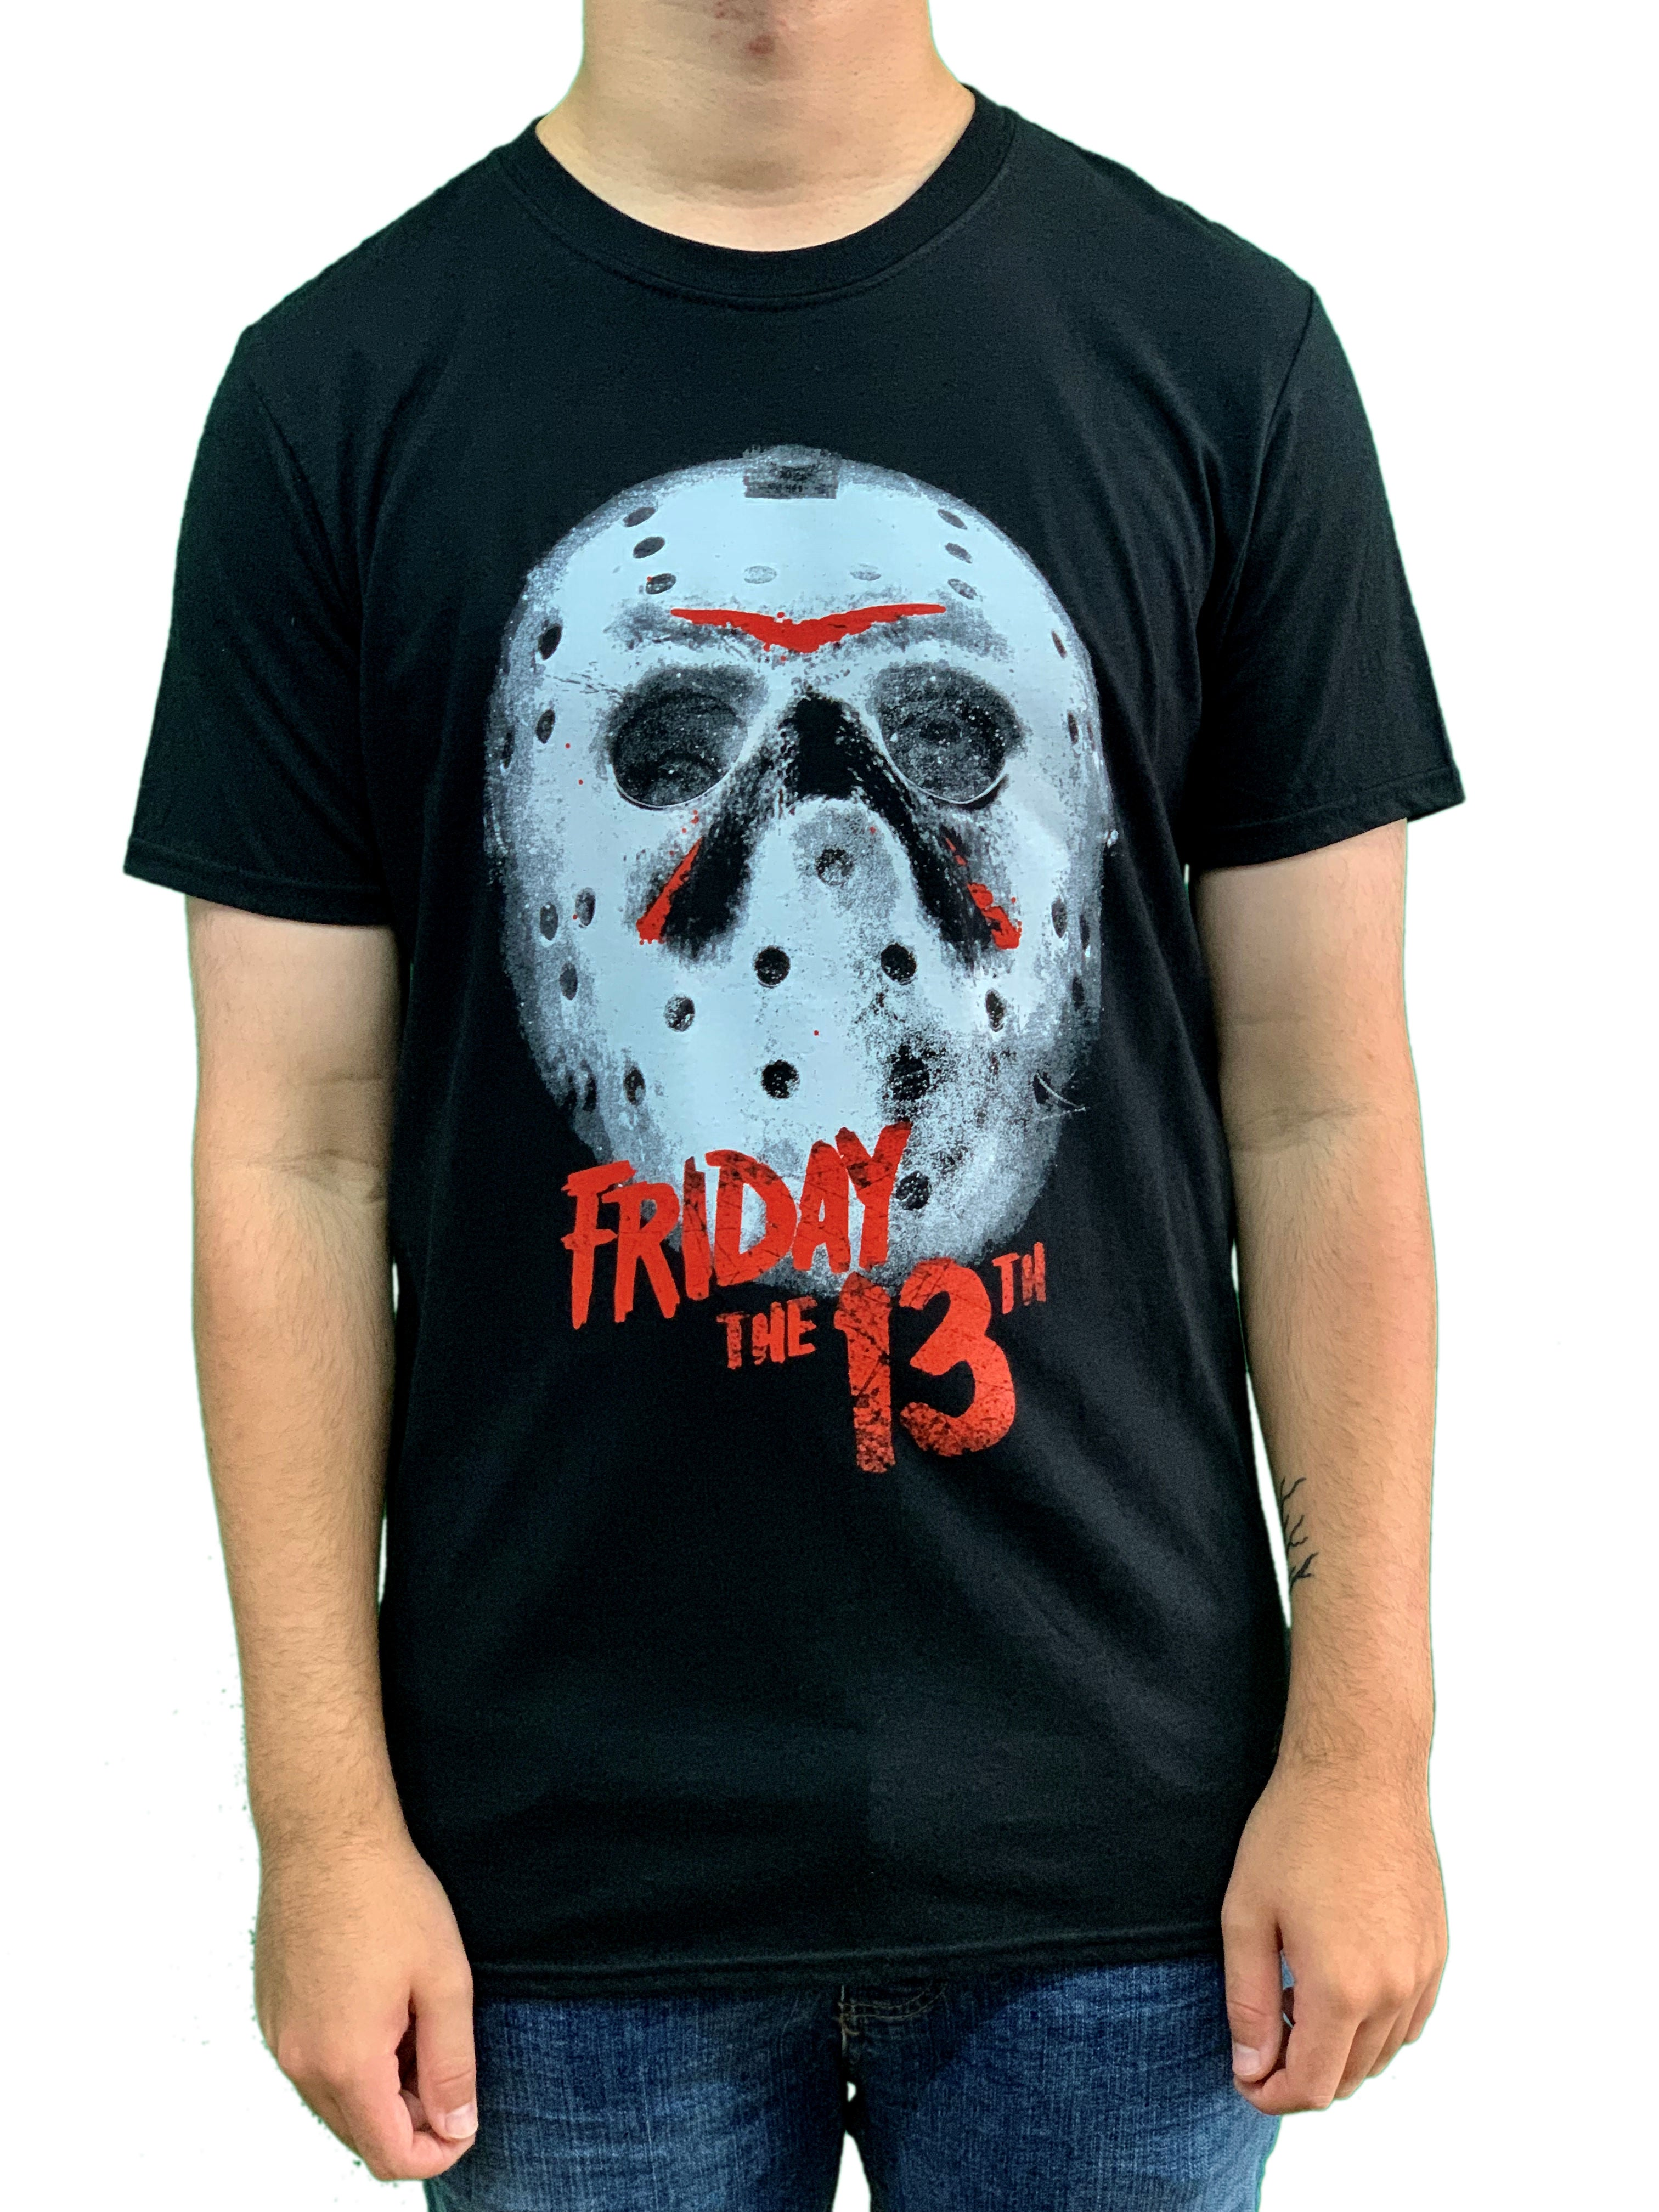 Friday The 13th White Mask Unisex Official T Shirt Brand New Various Sizes